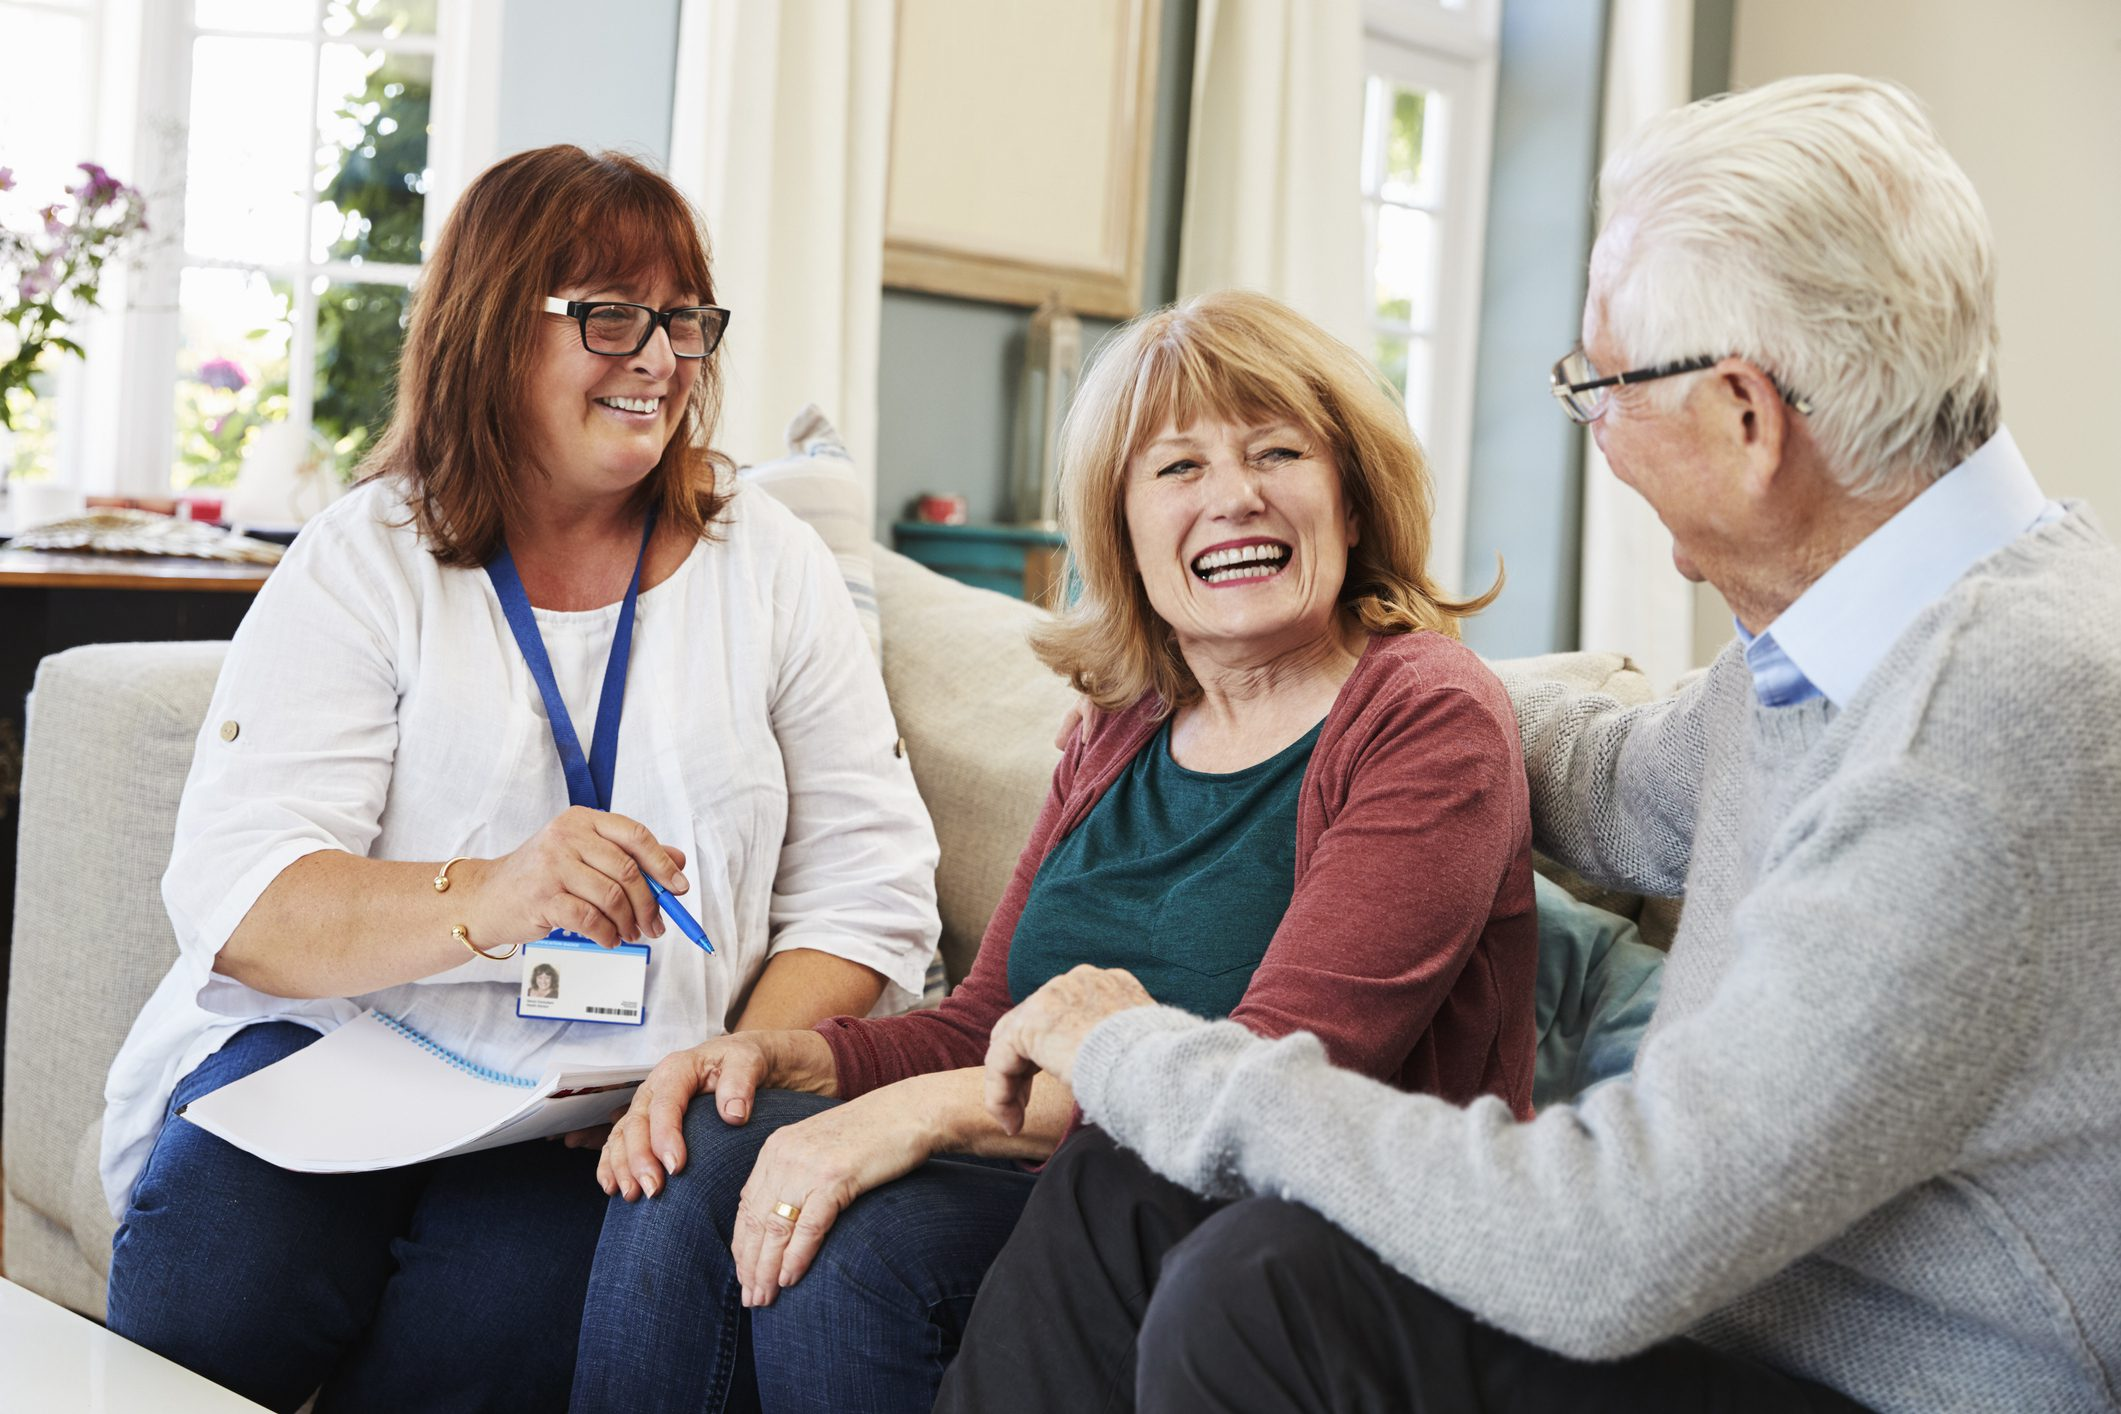 Continuing Care at Home has potential for the future for senior living providers